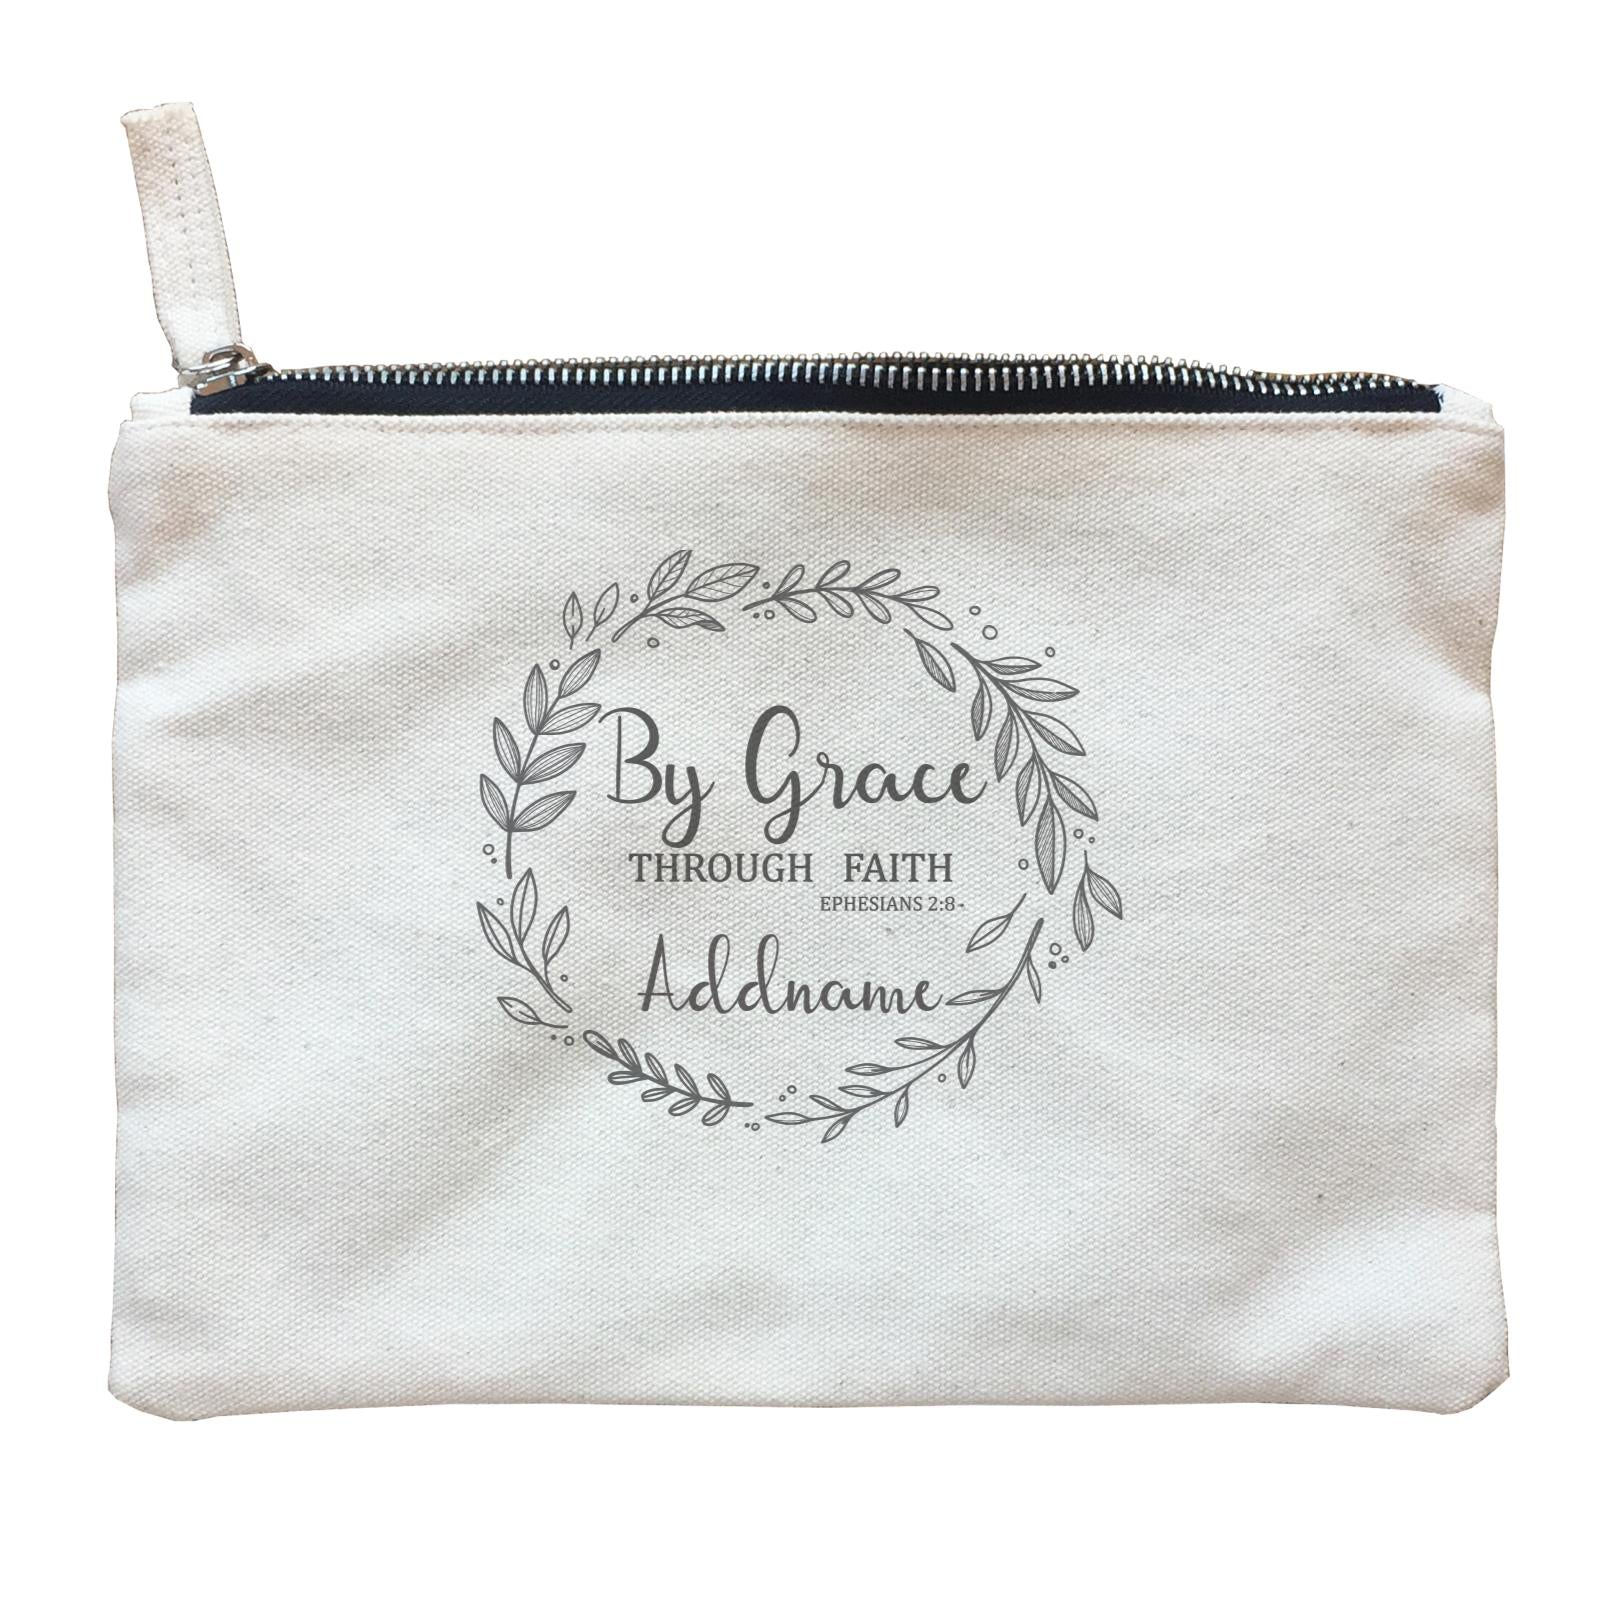 Christian Series By Grace Throug Faith Ephensians 2.8 Addname Zipper Pouch